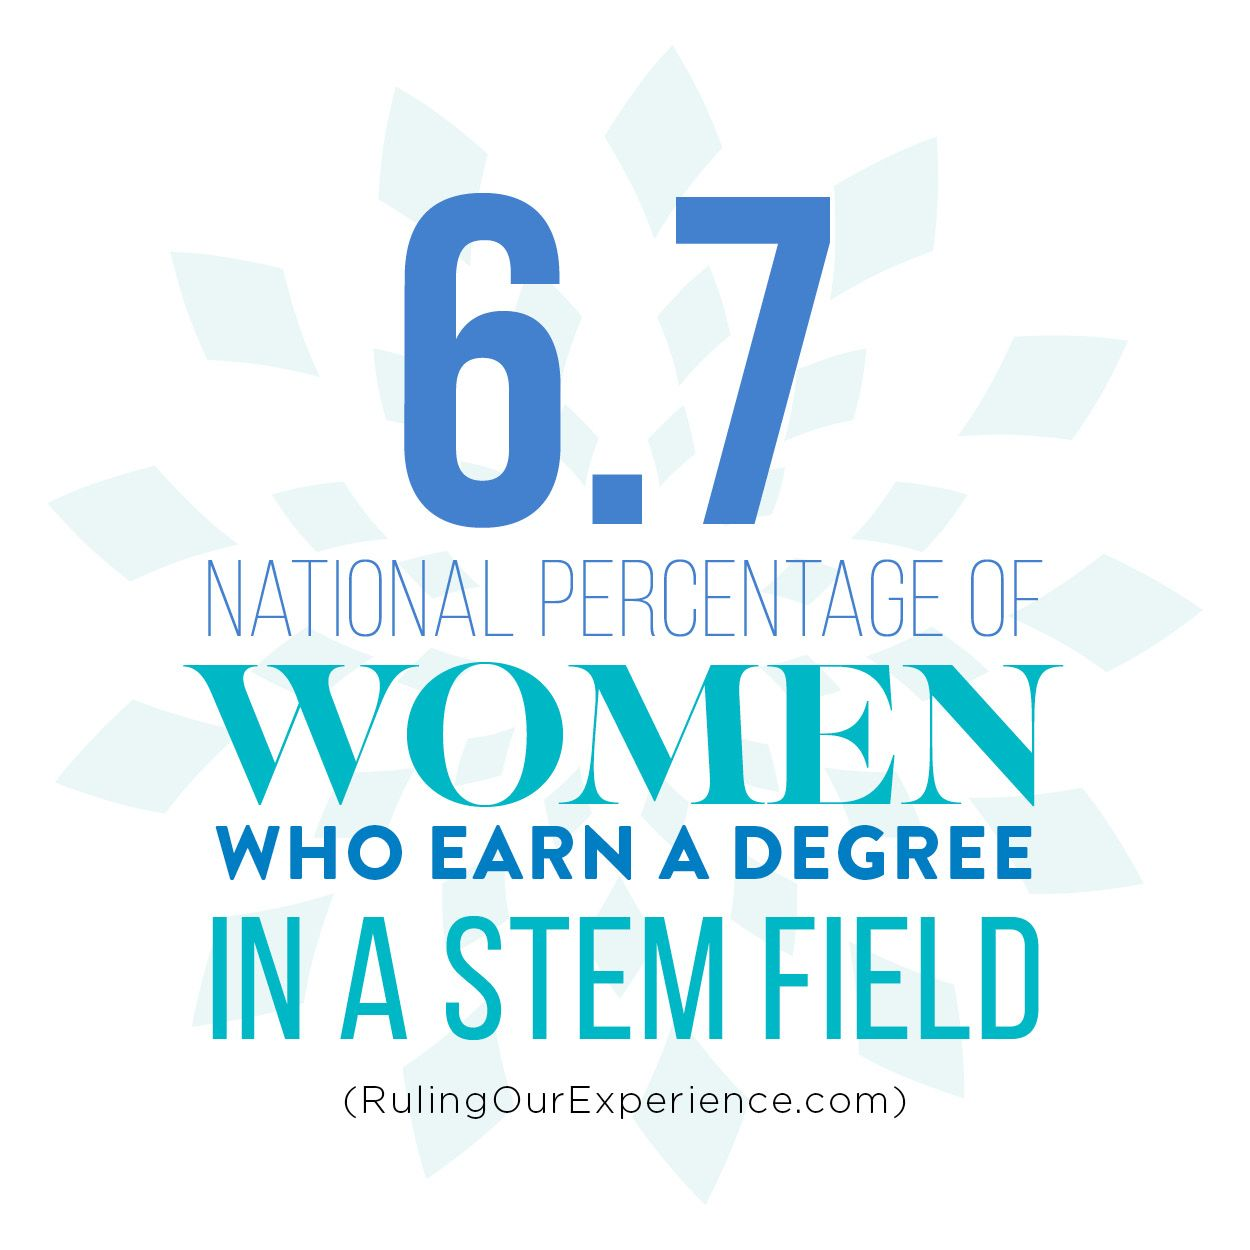 6.7 national percentage of women who earn a degree in a STEM field (RulingOurExperience.com)